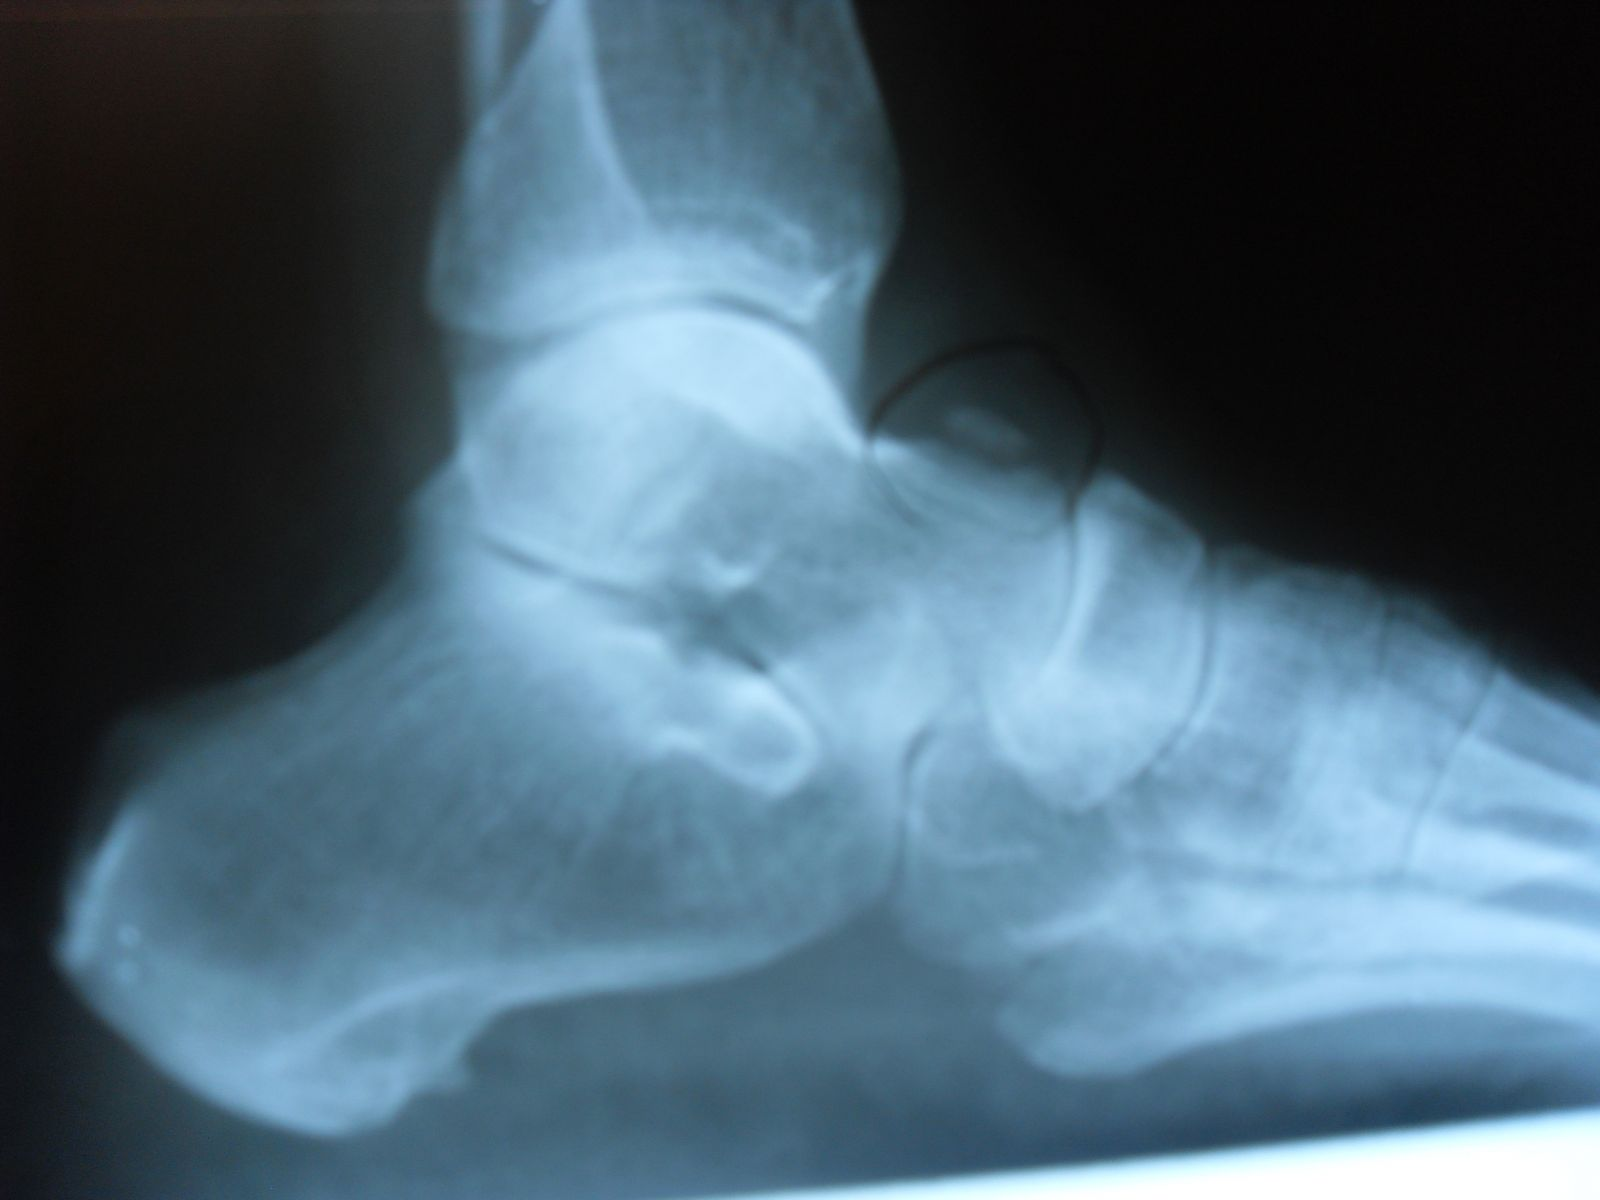 Talus Fracture - Podiatry, Orthopedics, - 85.6KB